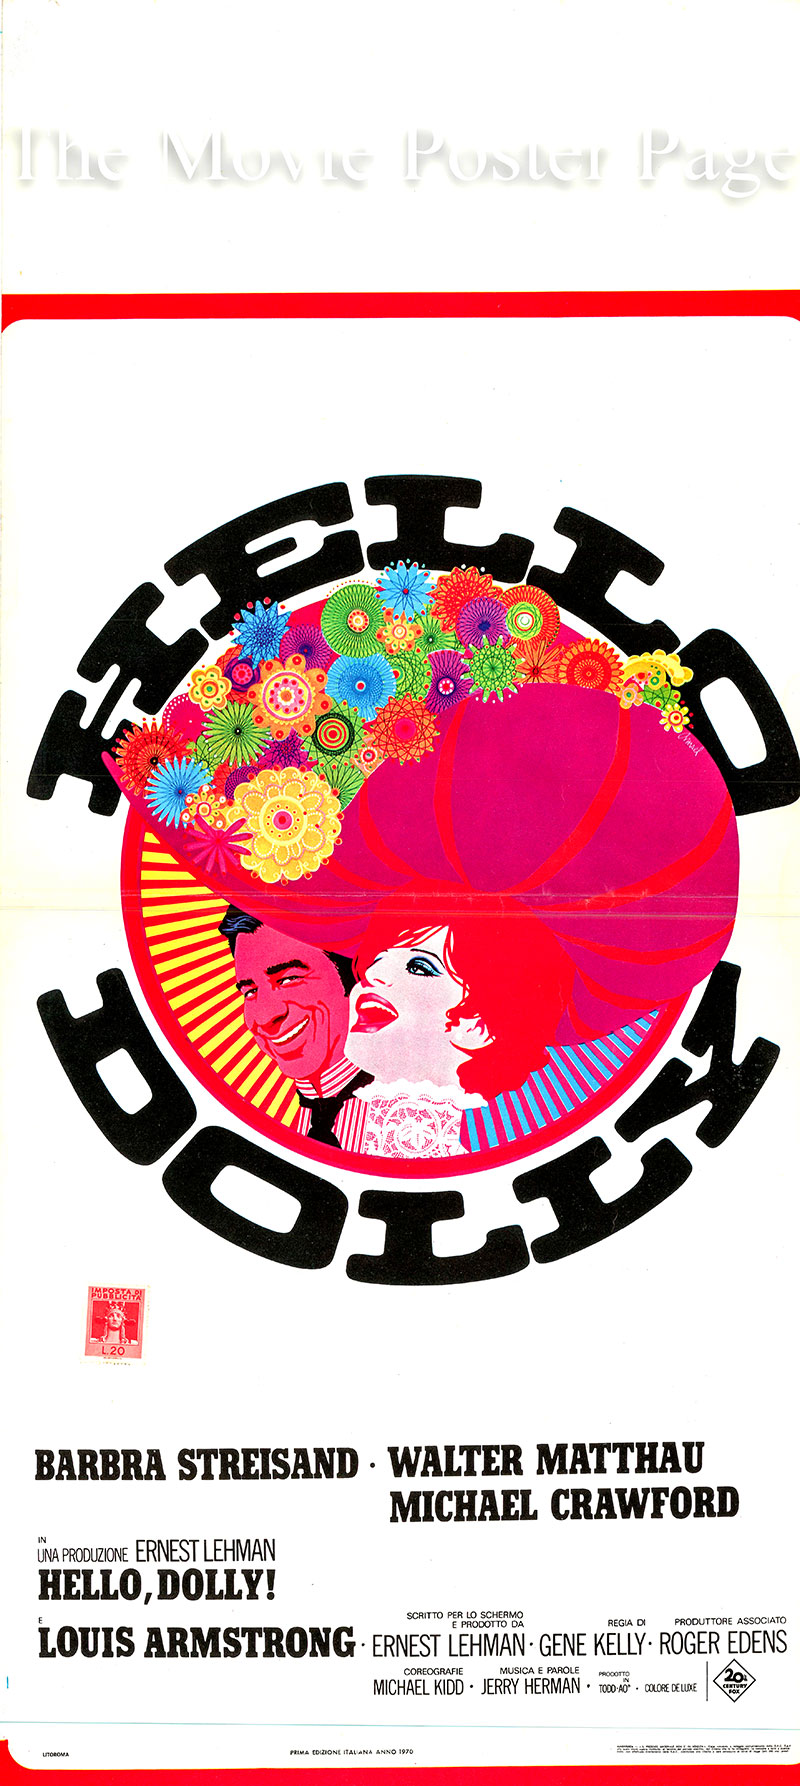 Pictured is an Italian locandina promotional poster for the 1969 Gene Kelly film Hello Dolly starring Barbra Streisand as Dolly Levi.